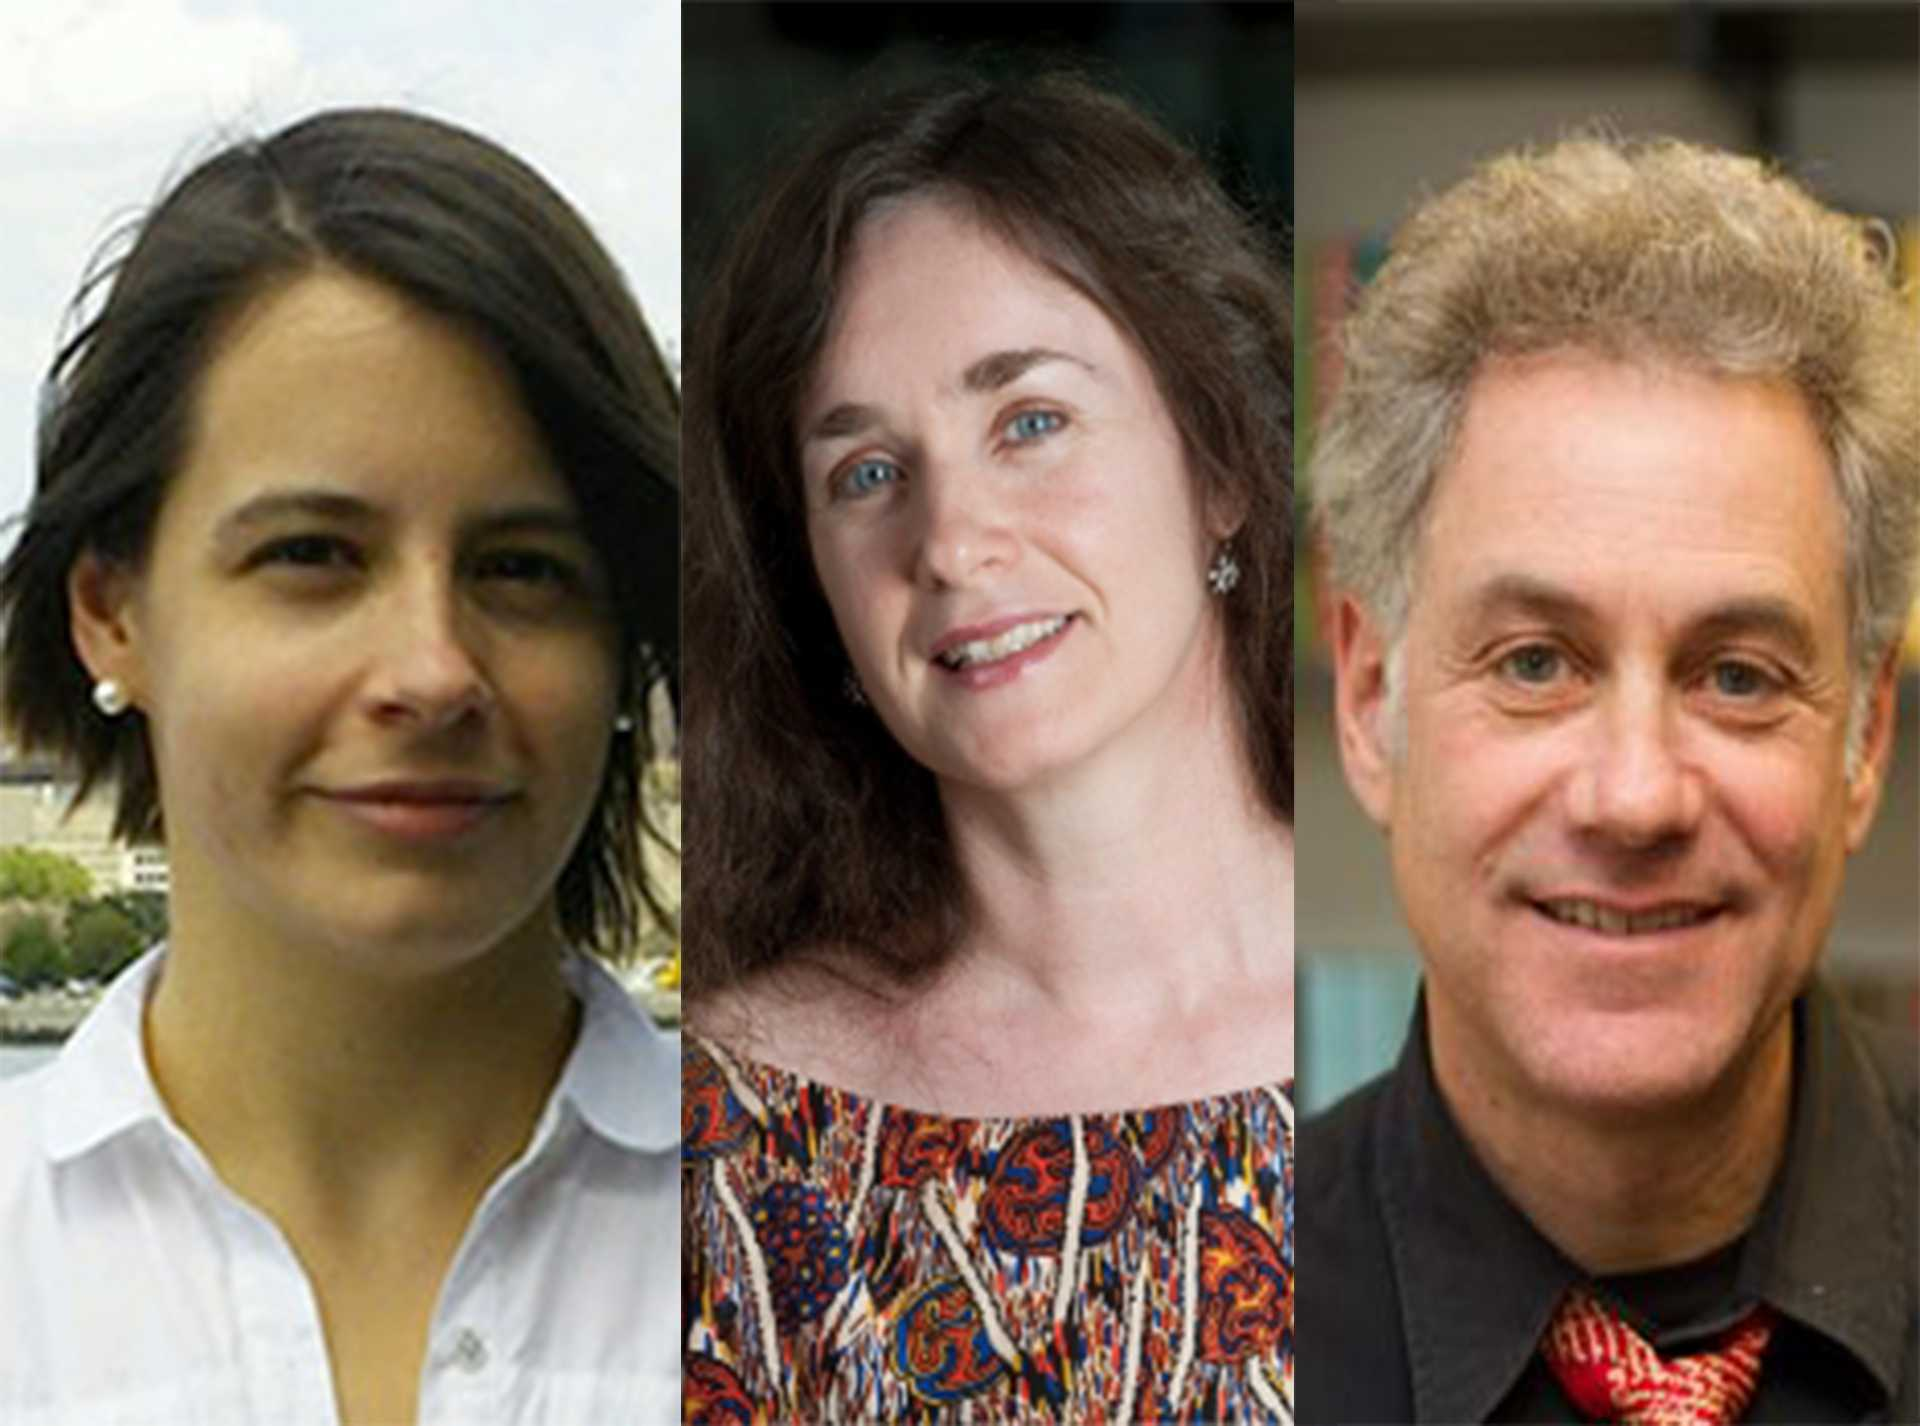 Stefanie Goyette, of the Liberal Studies program, Moya Luckett, of Gallatin, and Michael Peachin, the director of undergraduate studies for classics, are just a few of the numerous professors at NYU to have released books.